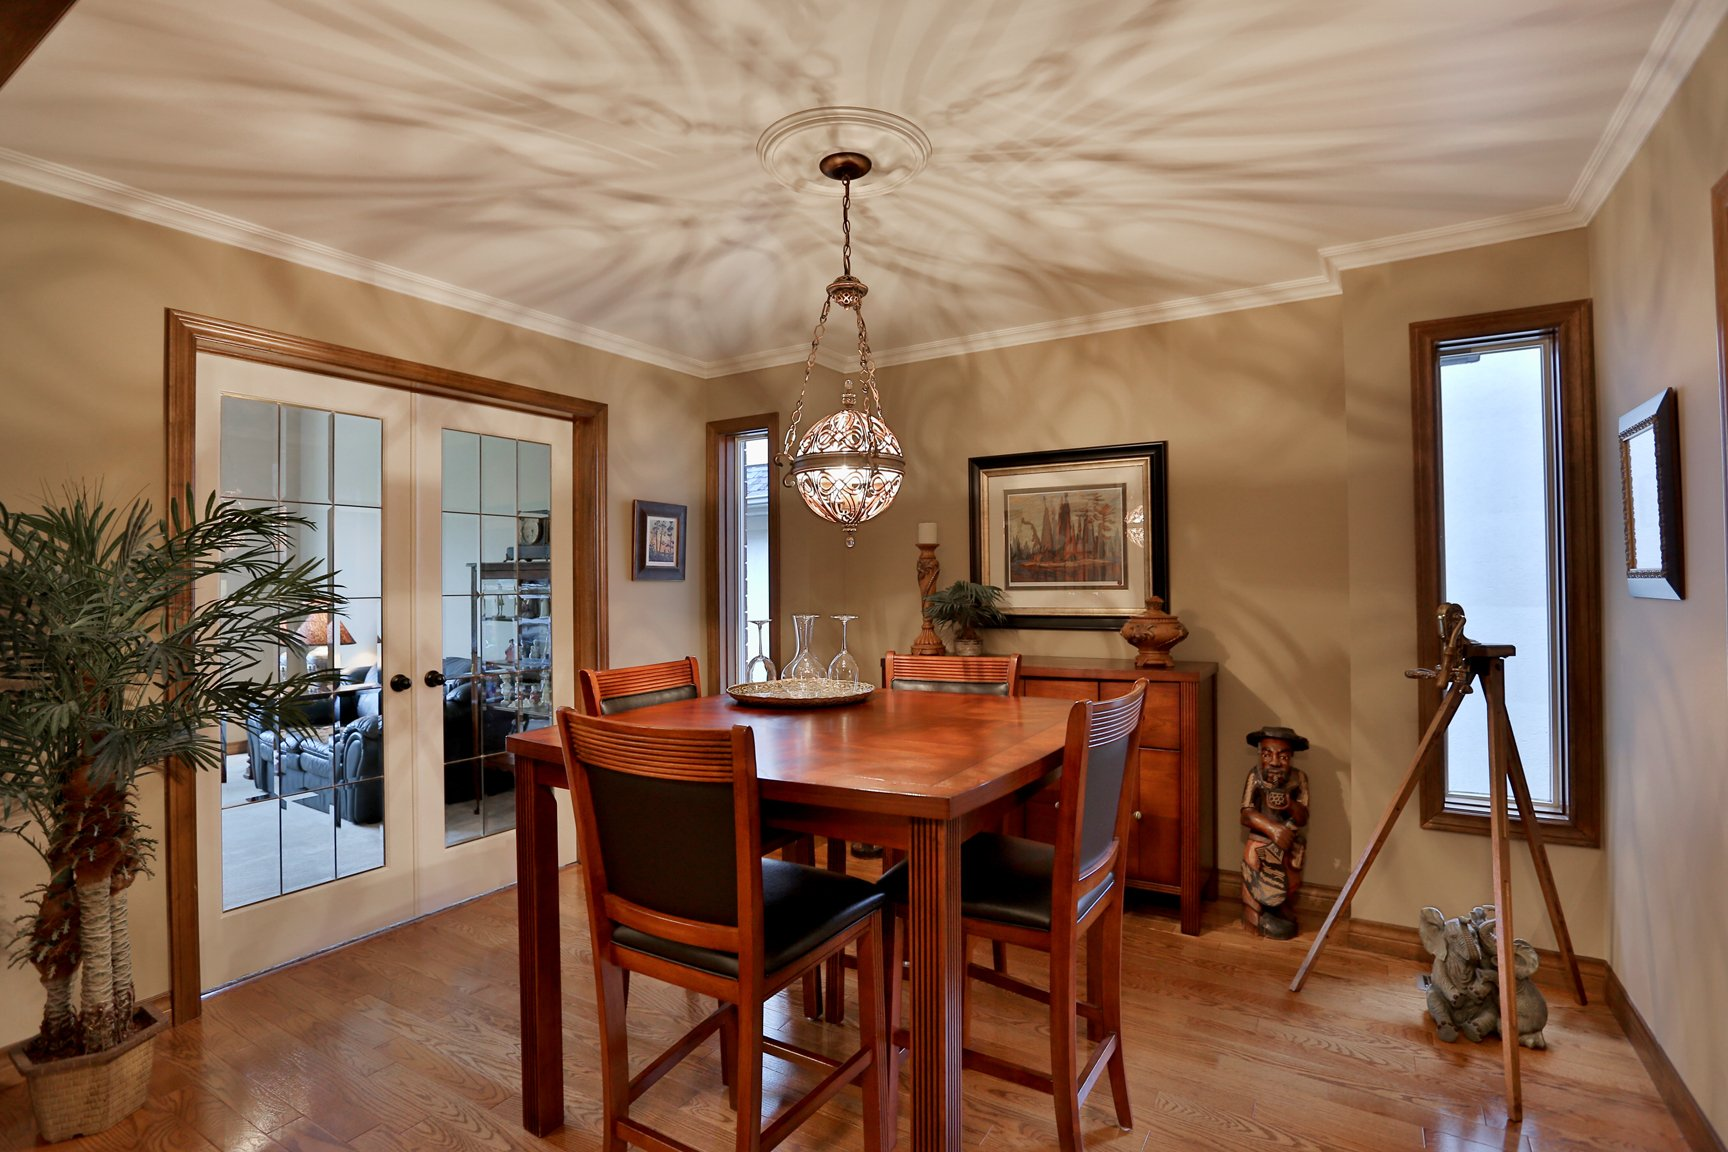 85 Galley dining room3 - Recently SOLD in Ancaster